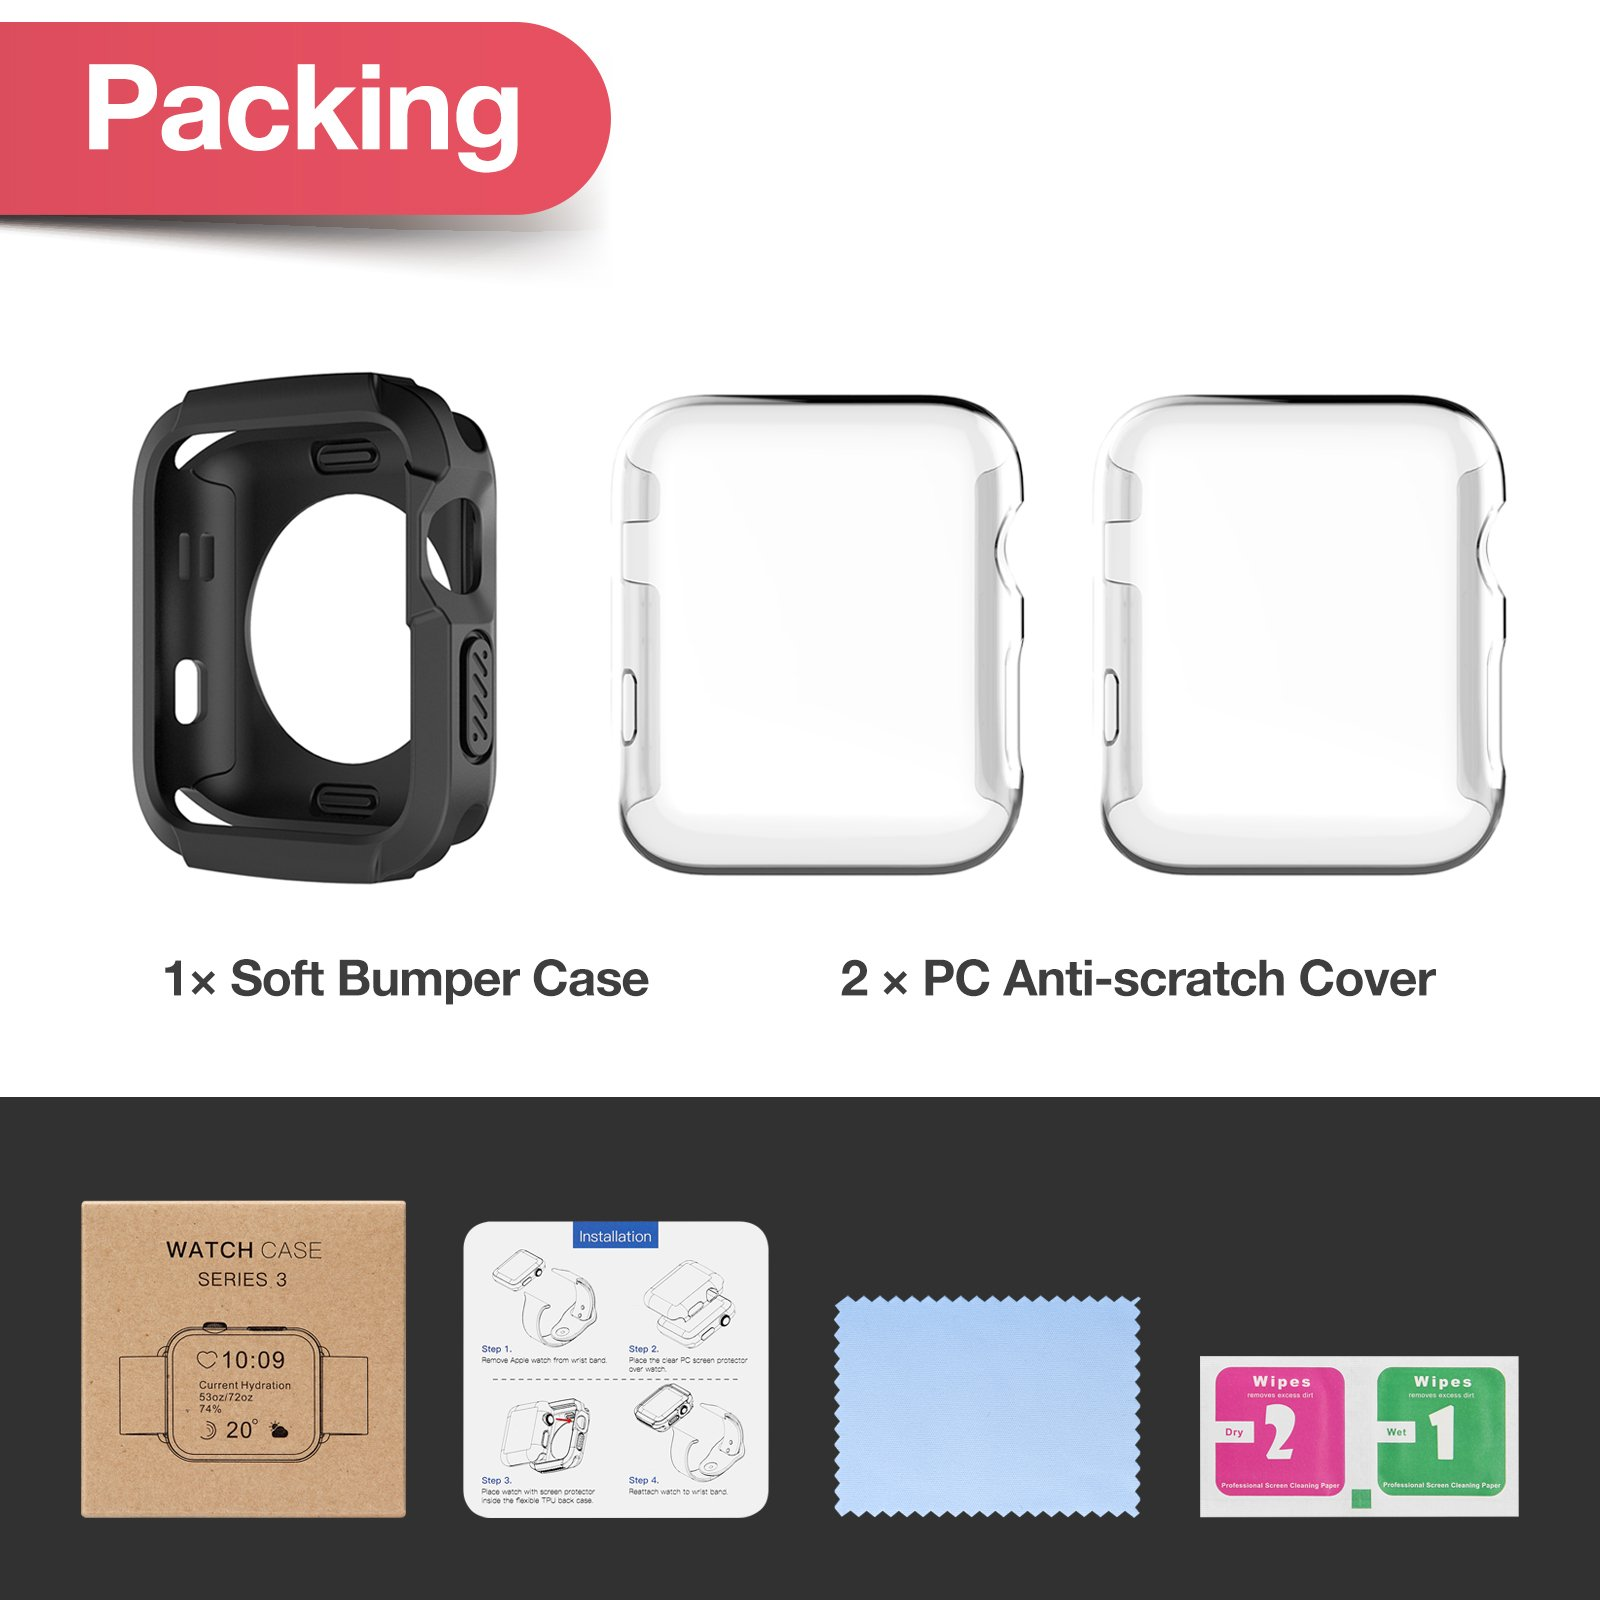 Apple Watch 3 Case, iVAPO 2-Pack Apple Watch Case with Screen Protector Cover Anti-scratch 360° Shock Absorption Hard Protective Bumper Case for Apple Watch Series 3 42mm Black (Need Stronger Press) by iVAPO (Image #6)